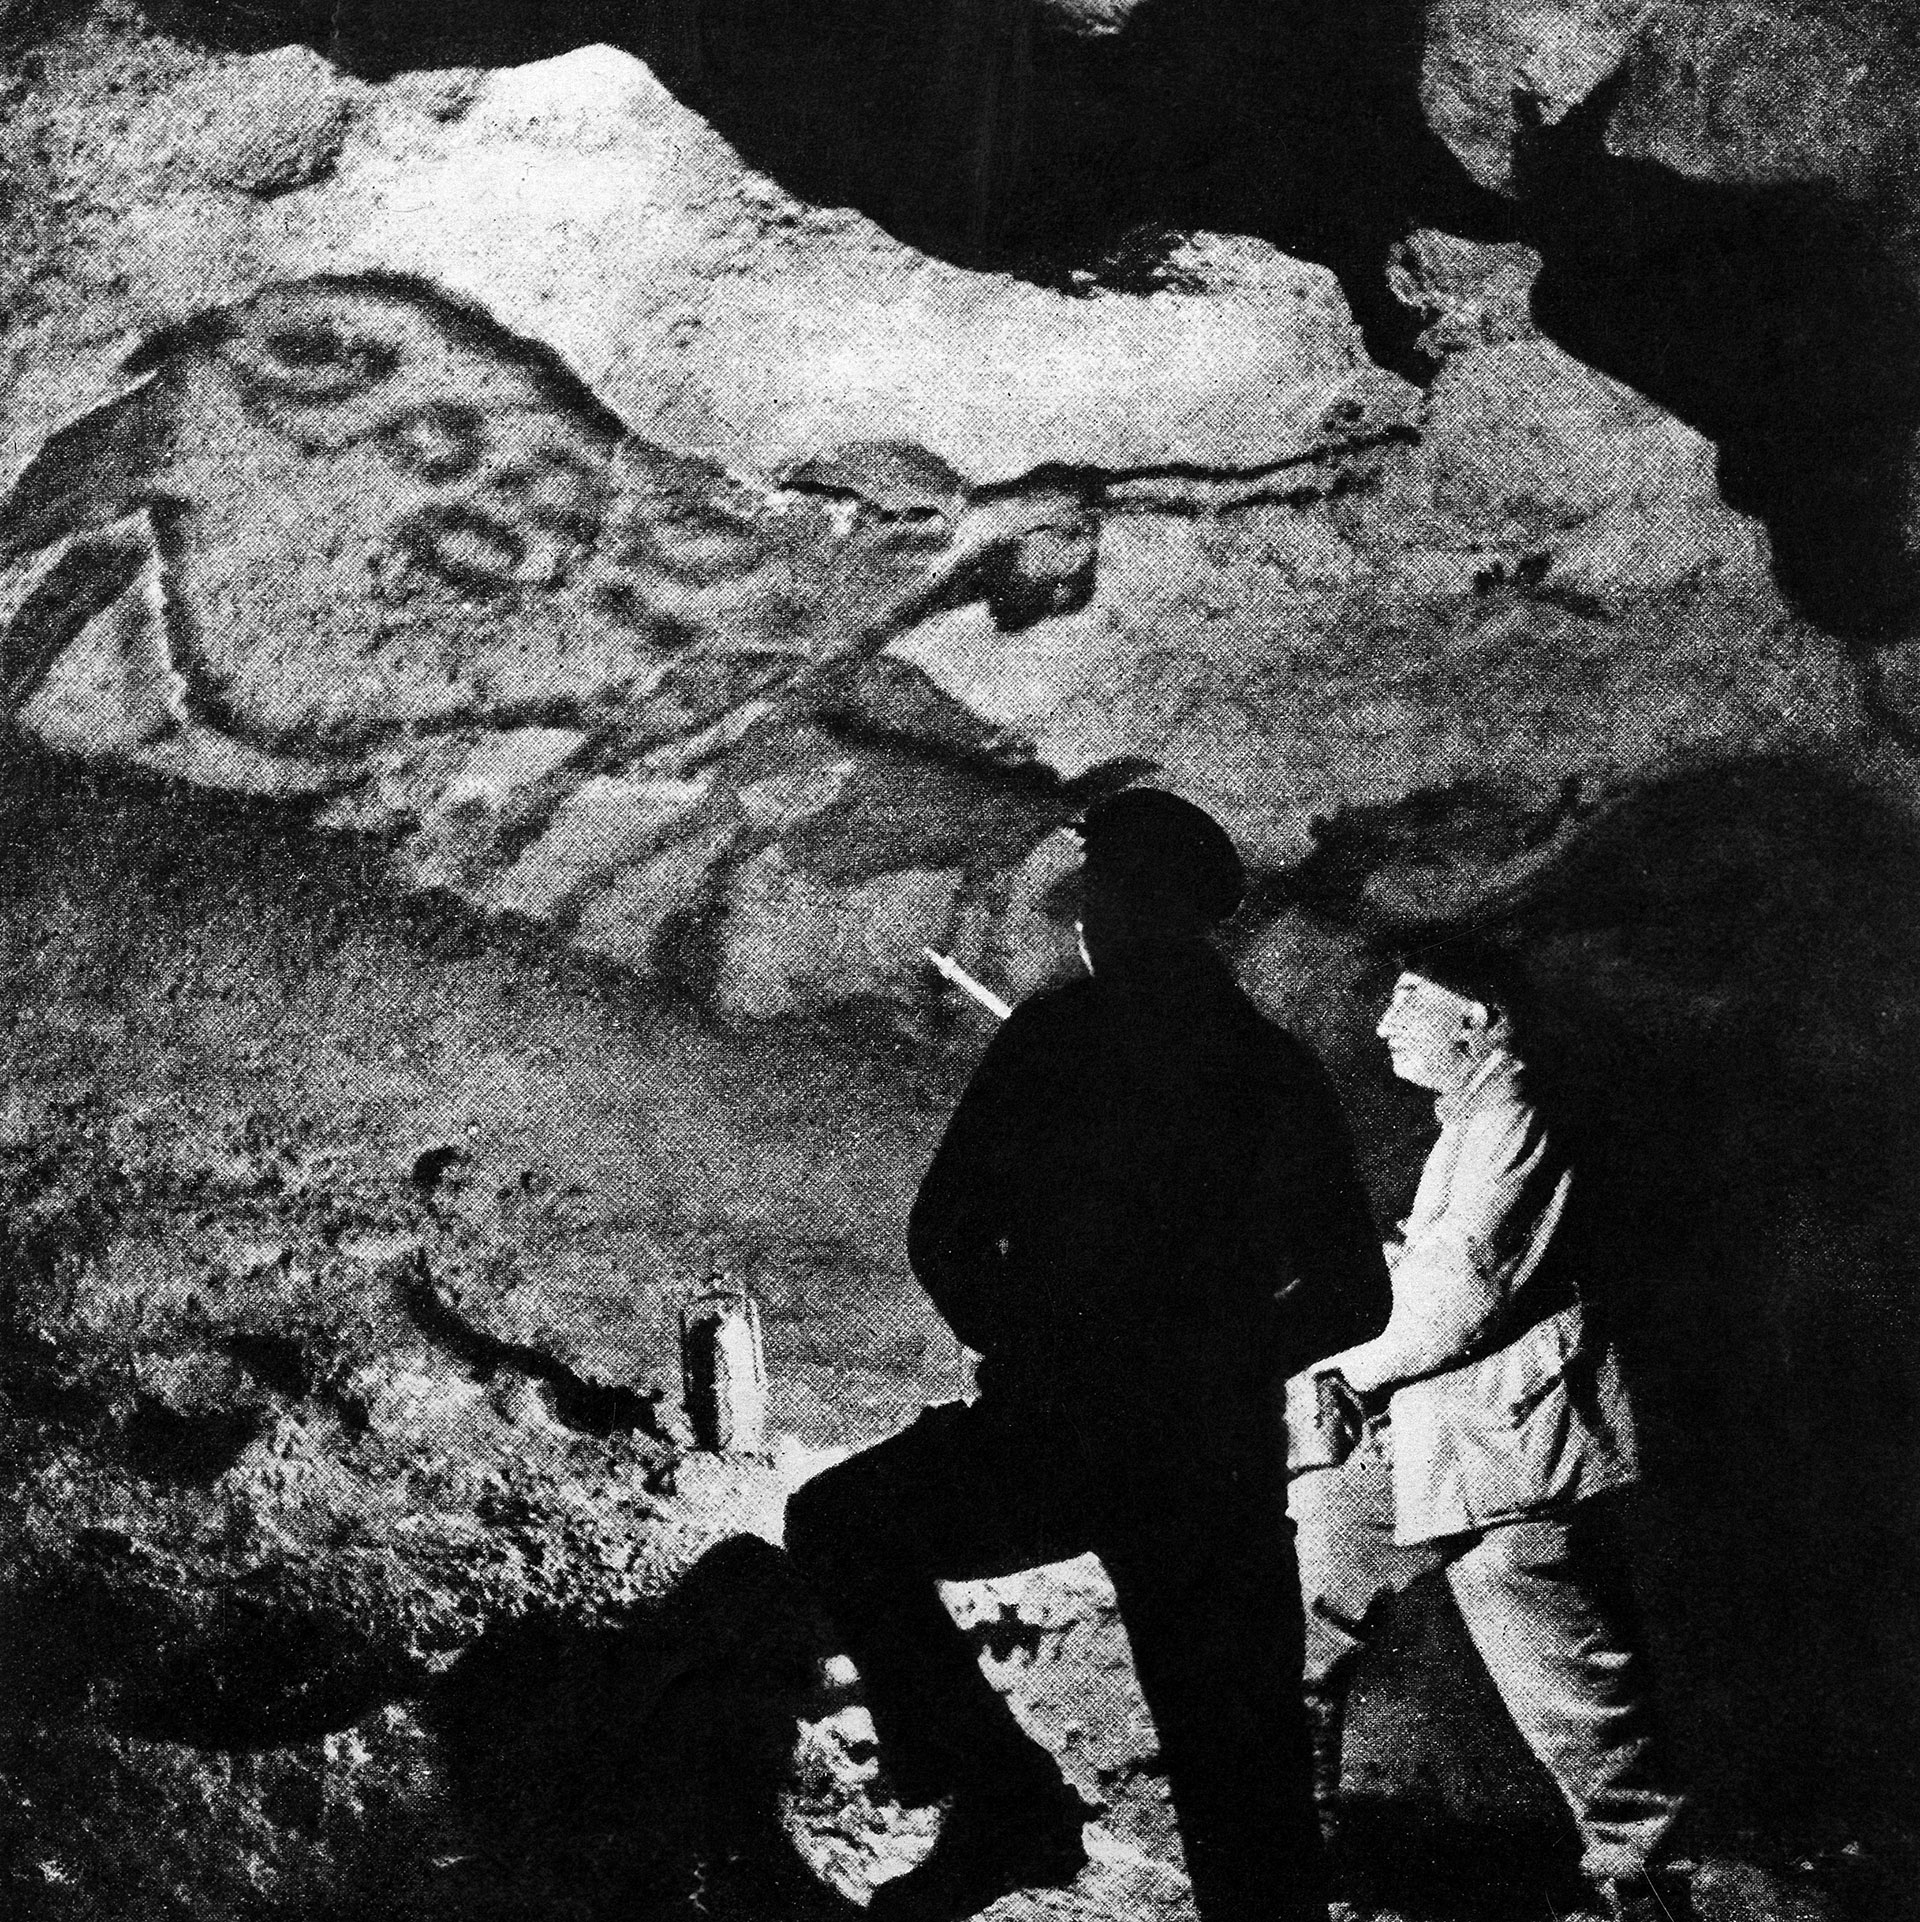 Picture of French archaeologist Abbé Breuil. He was known as the authority on rock art sites in Europe and Africa.